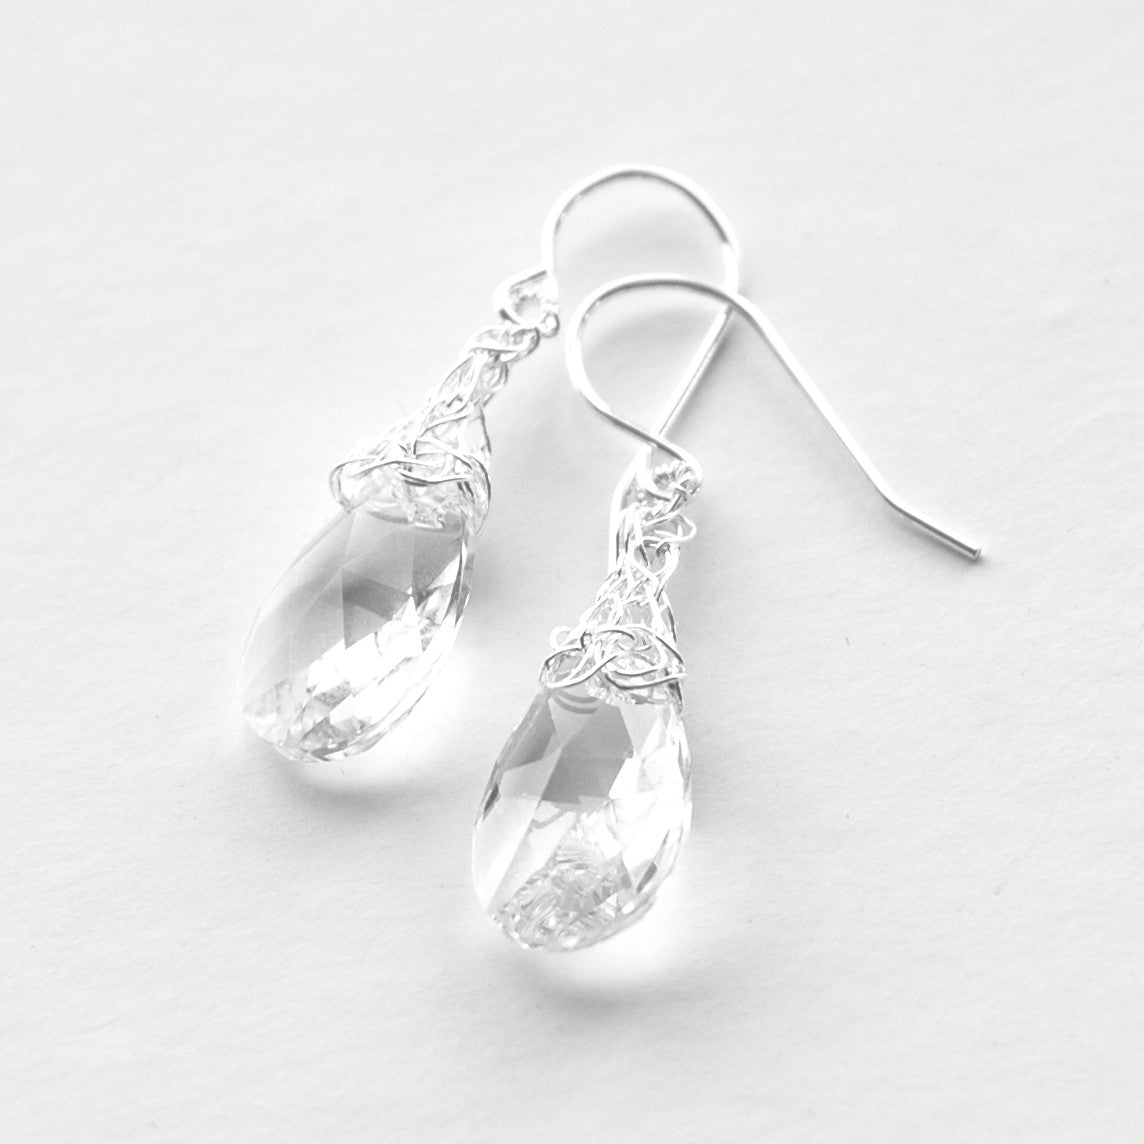 c2637a2ed Crocheted Silver Drops , silver and clear swarovski crystal - Yooladesign